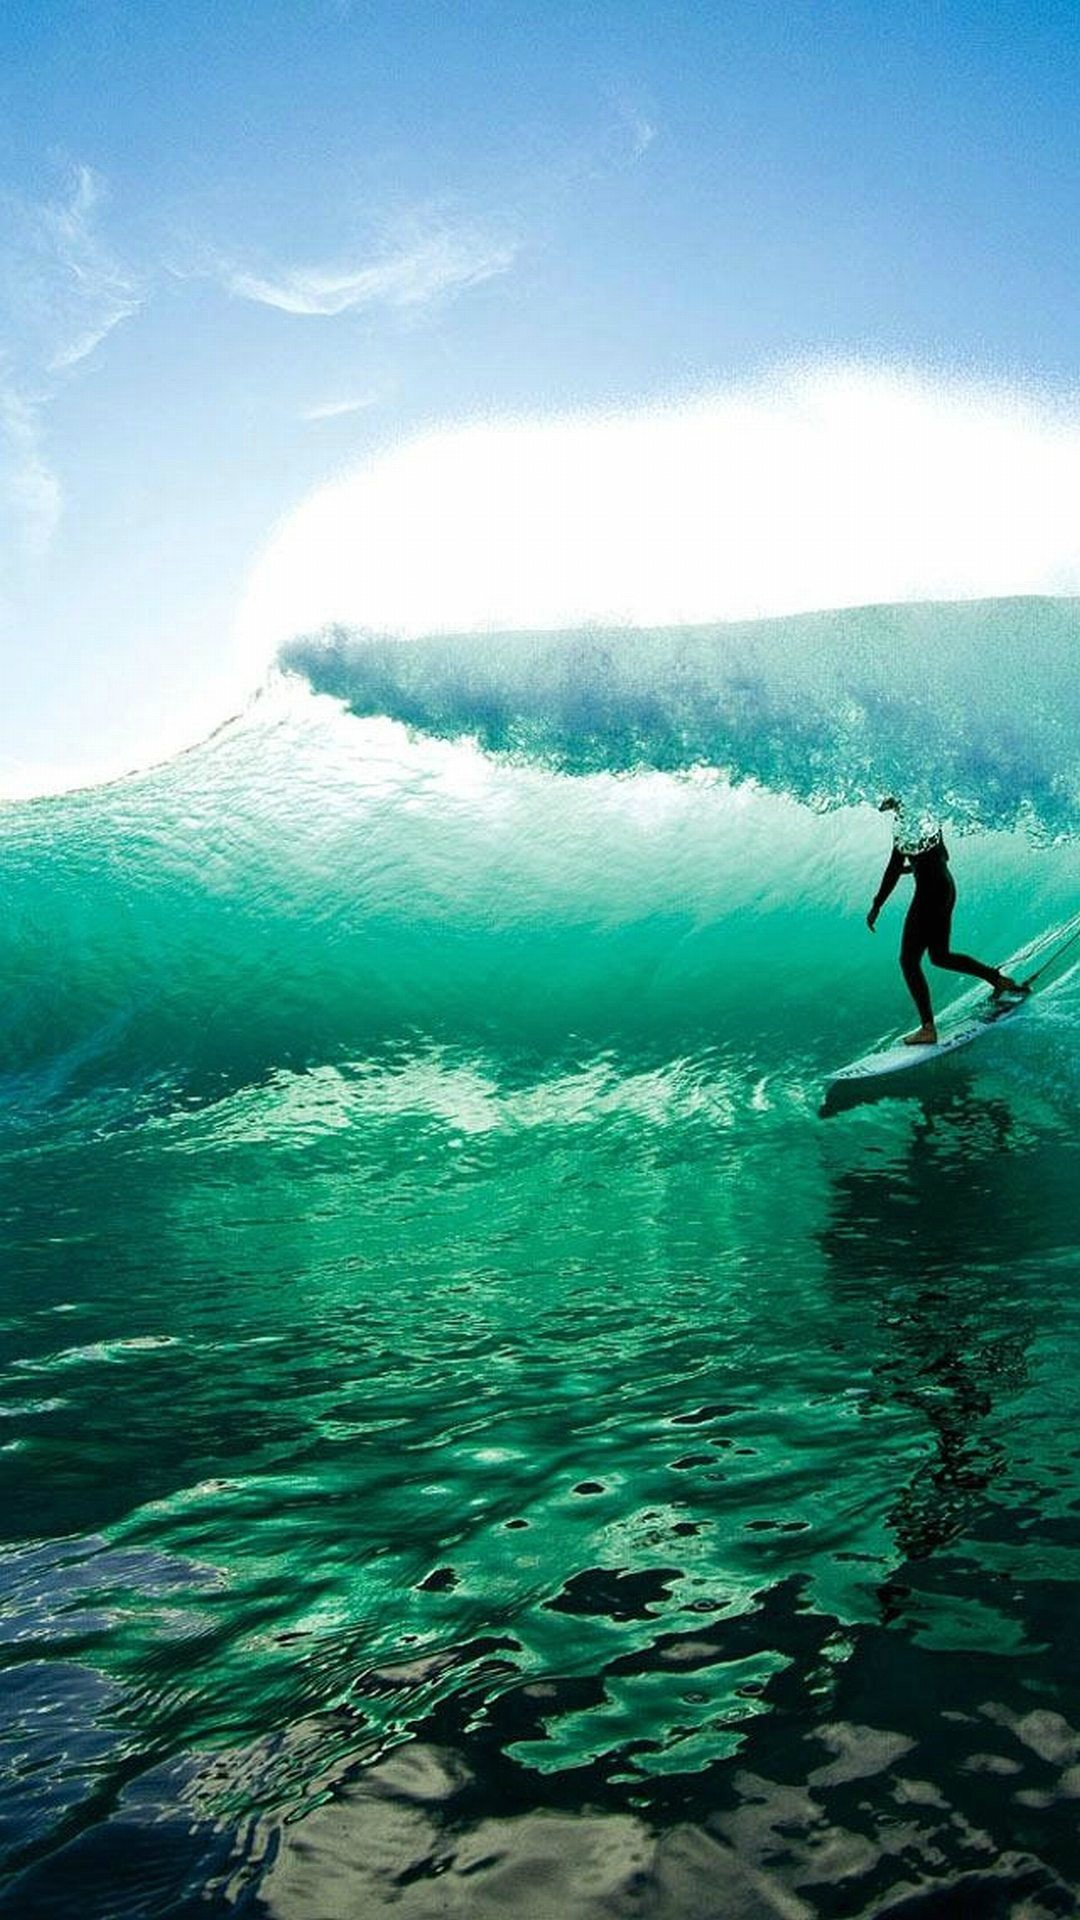 10 Hottest Seaside Wallpapers for the iPhone 6 Plus!